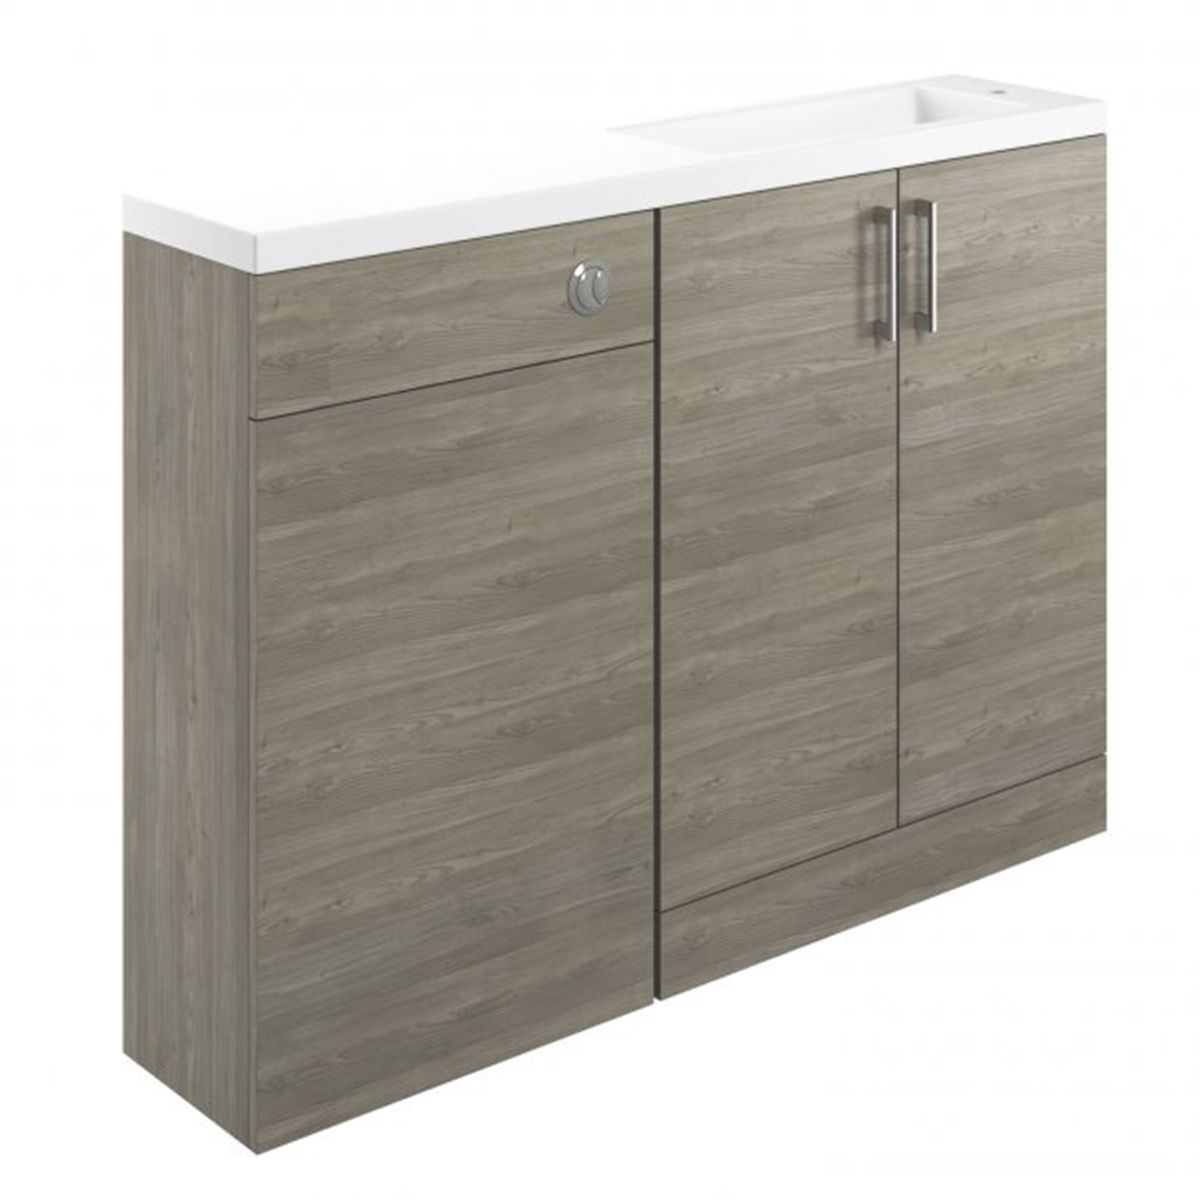 Moods Volta Grey Nordic Wood Vanity Unit/WC Pack with Basin 1207mm